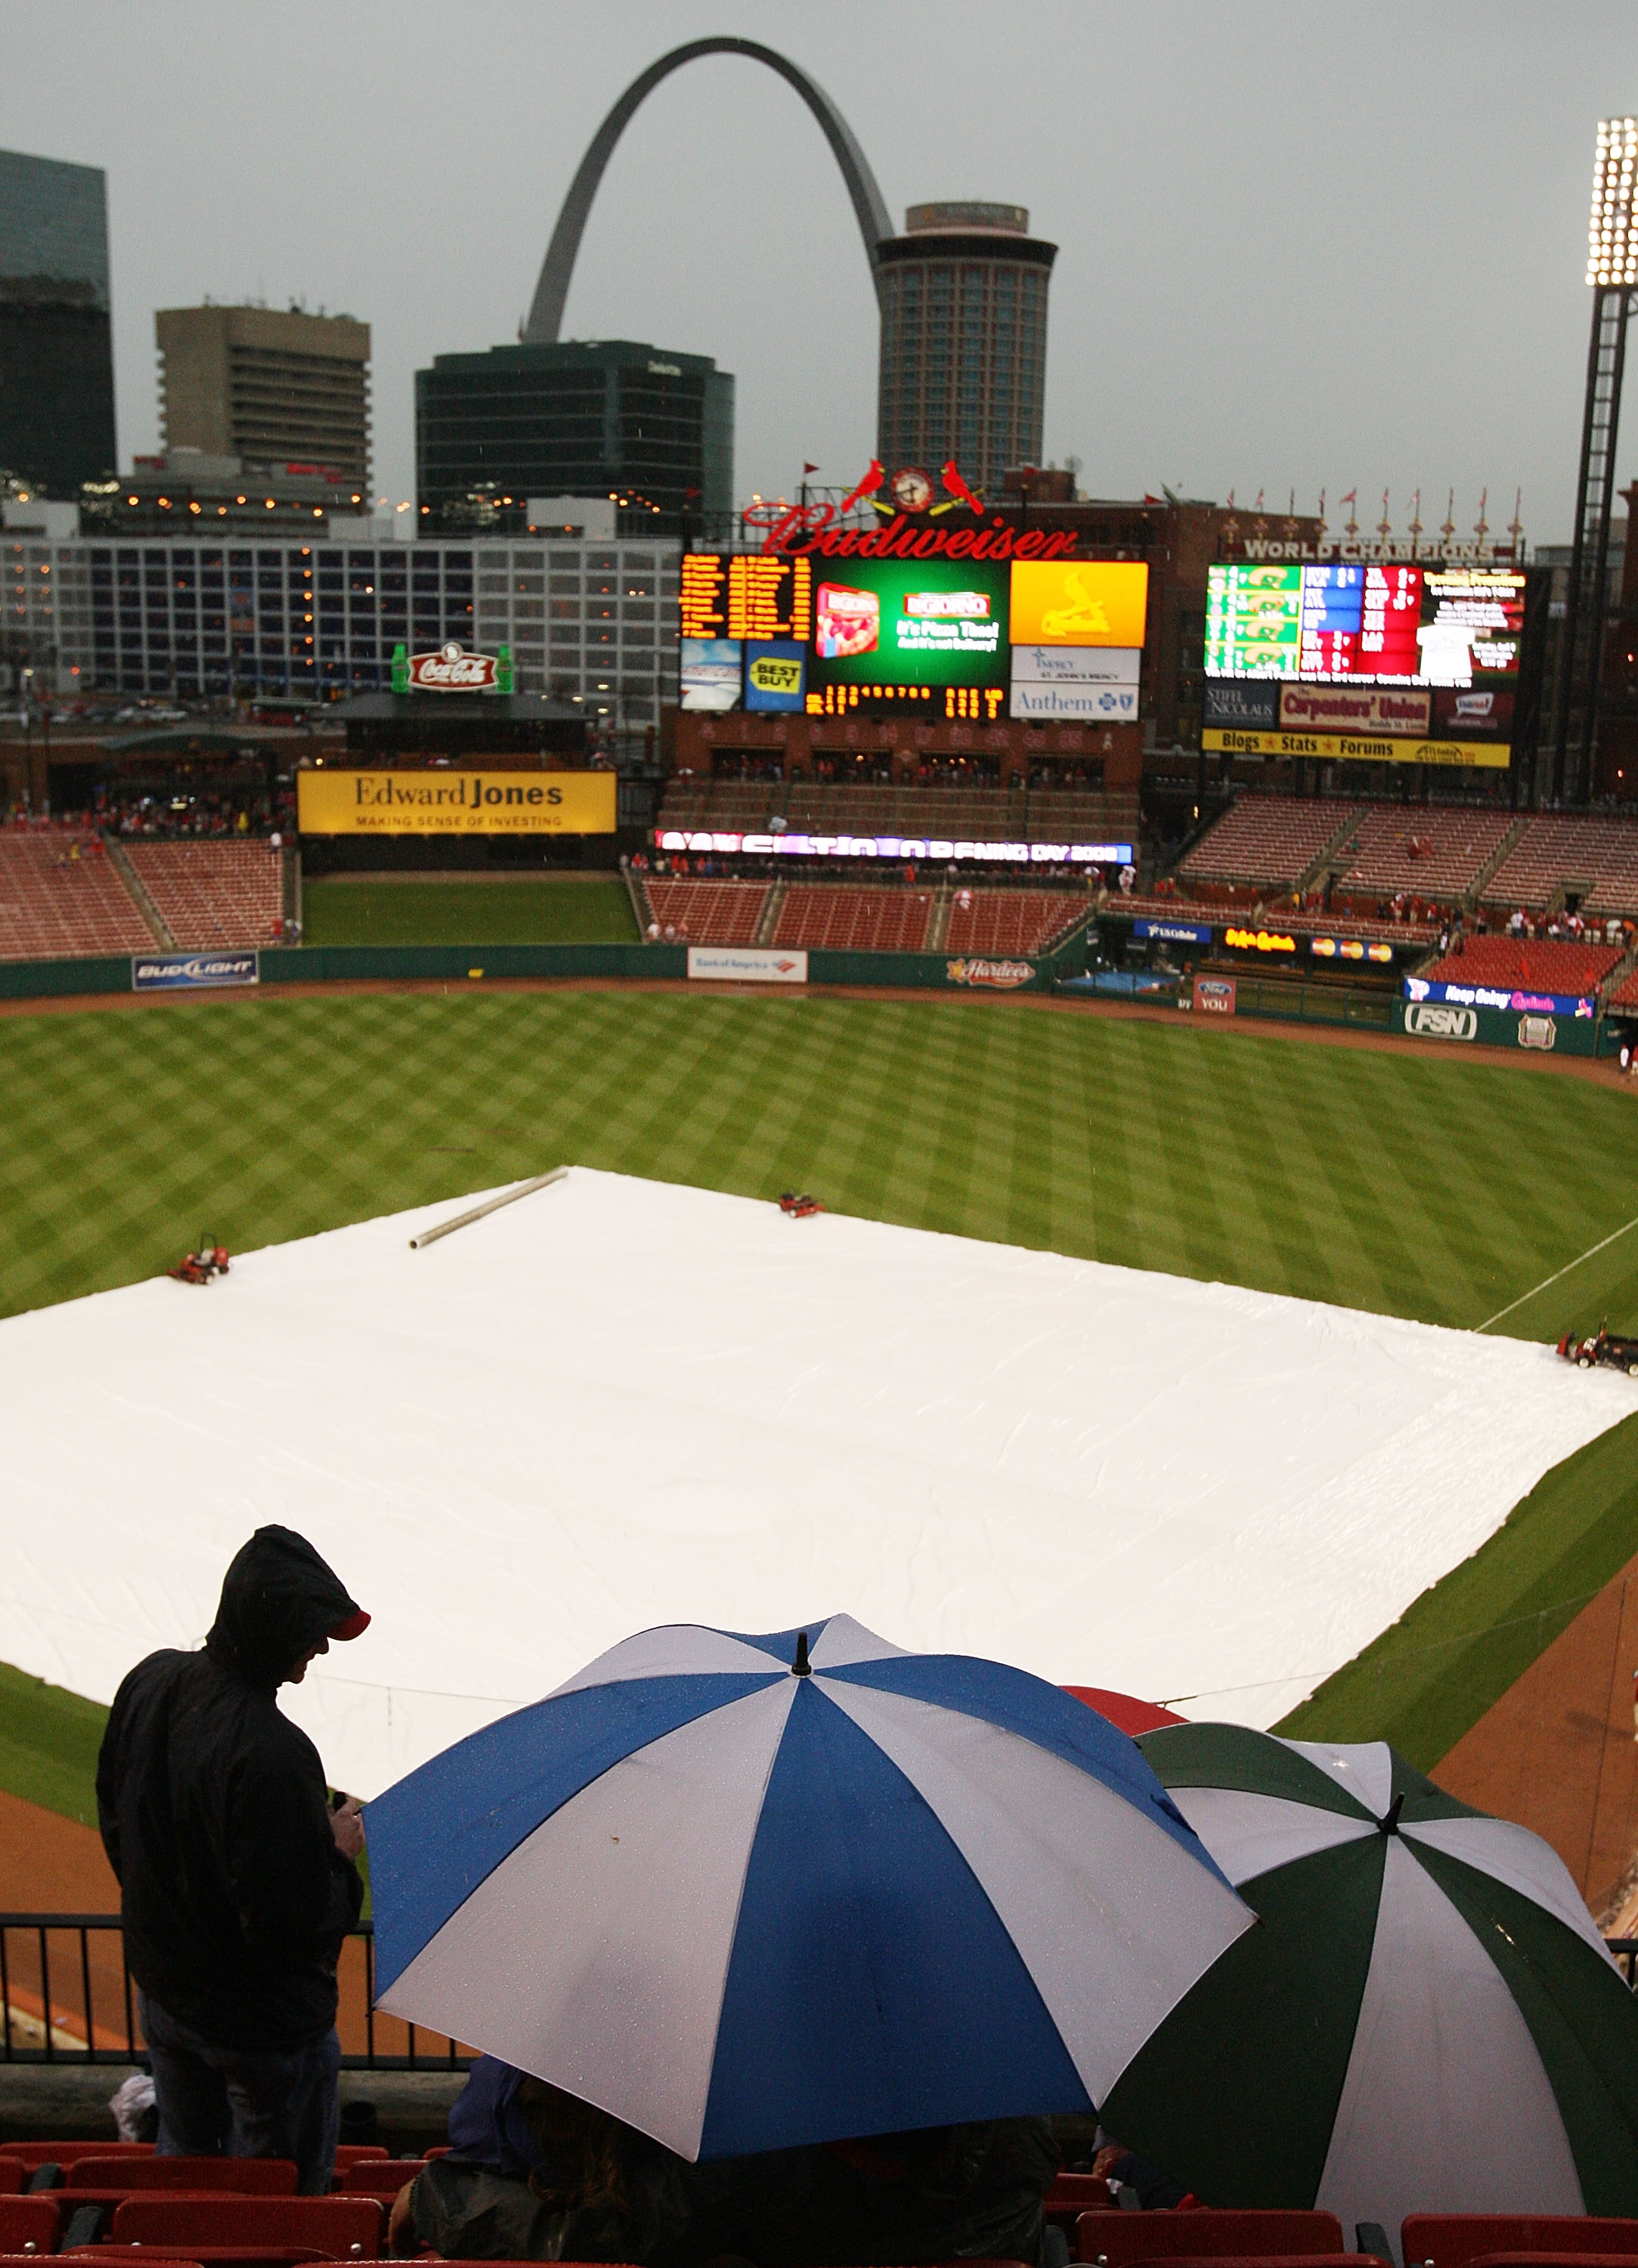 ST. LOUIS - MARCH 31:  Fans wait to see whether the St. Louis Cardinals home opener will continue after rain halted play in the third inning against the Colorado Rockies March 31,2008 at Busch Stadium in St. Louis, Missouri.  (Photo by Elsa/Getty Images)